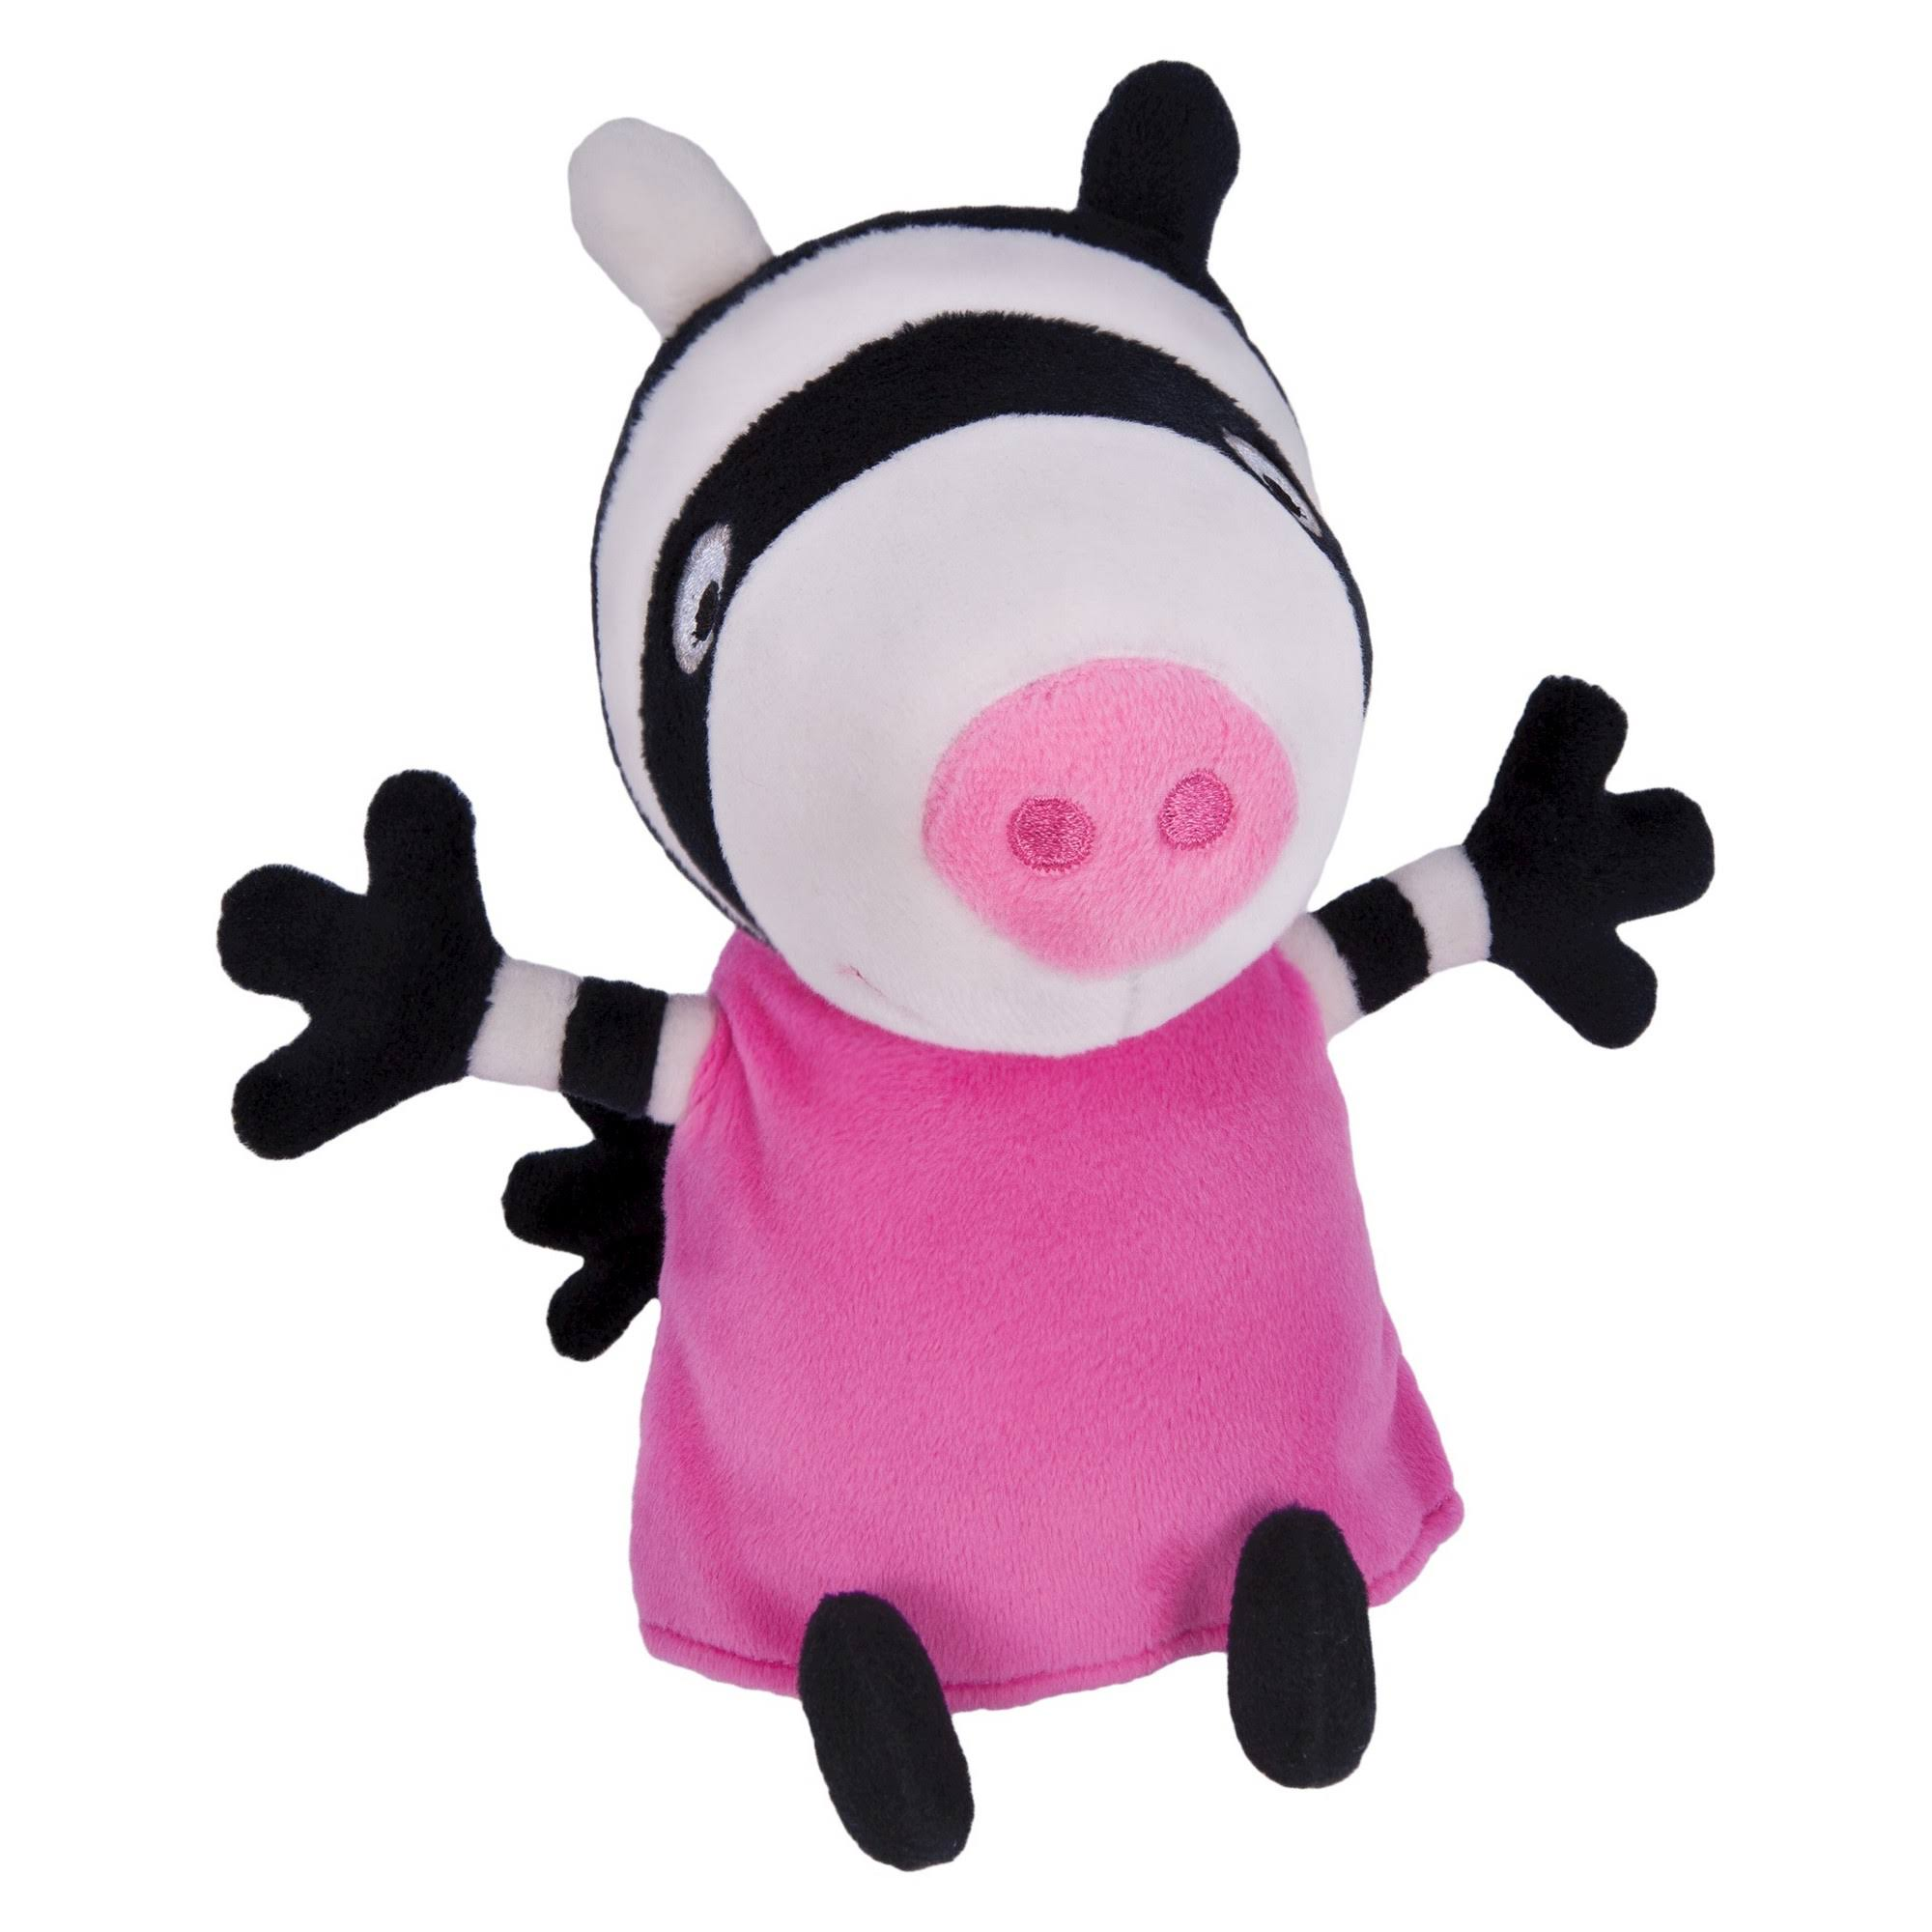 Peppa Pig Peppa Plush W Sounds